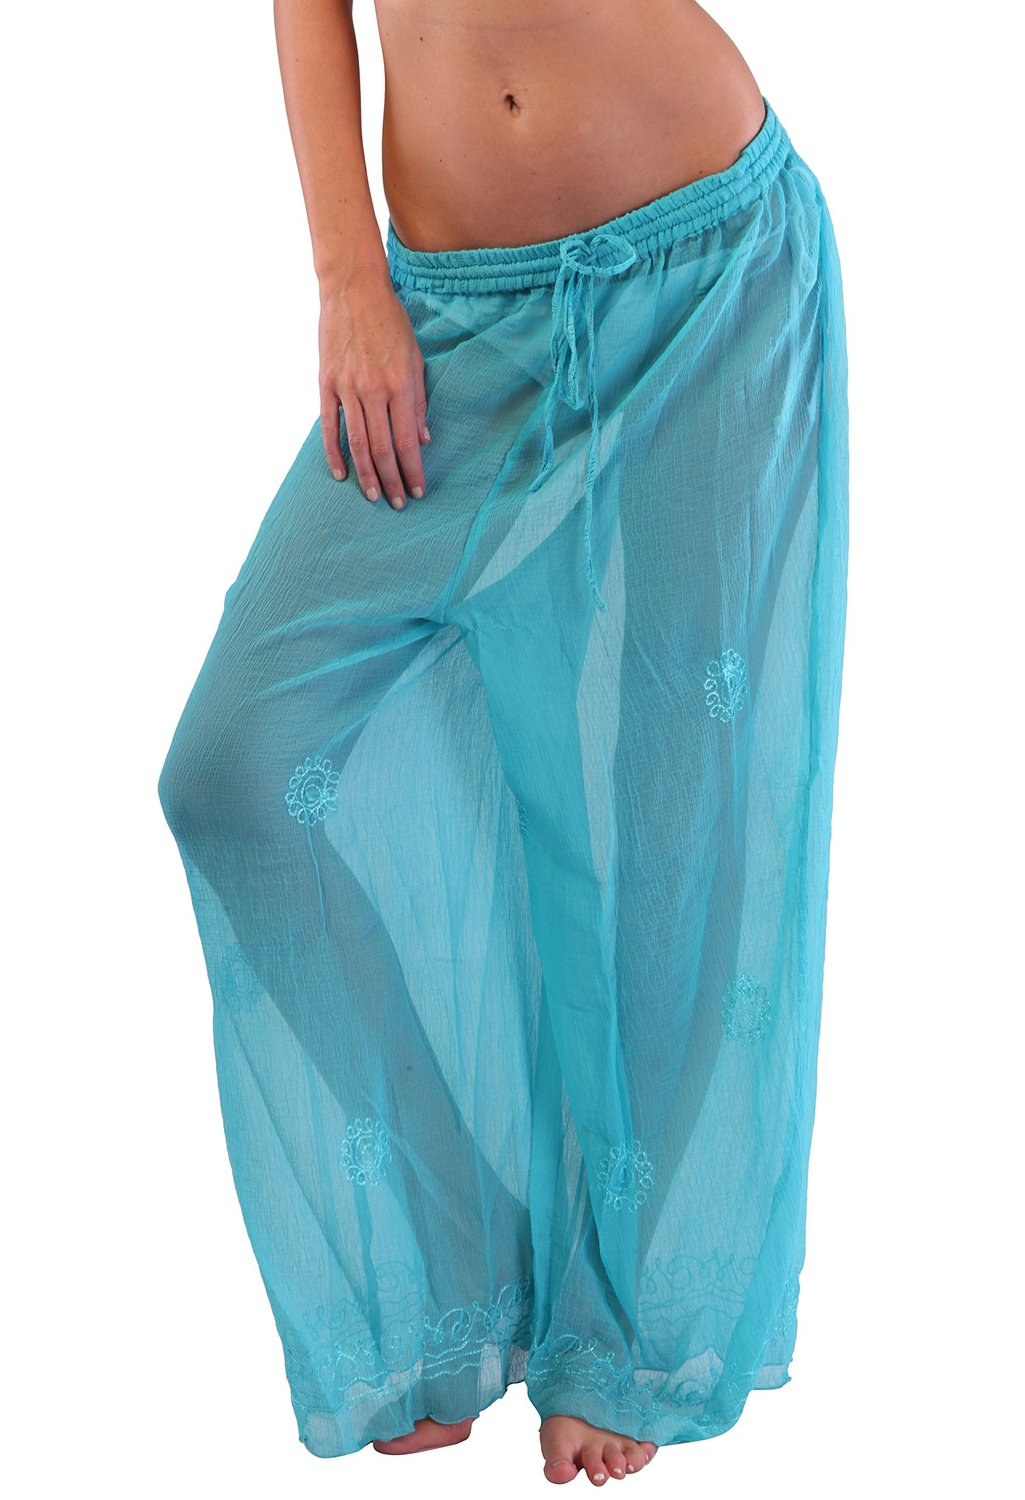 Ingear Beach Sheer Pants Cover Up | eBay